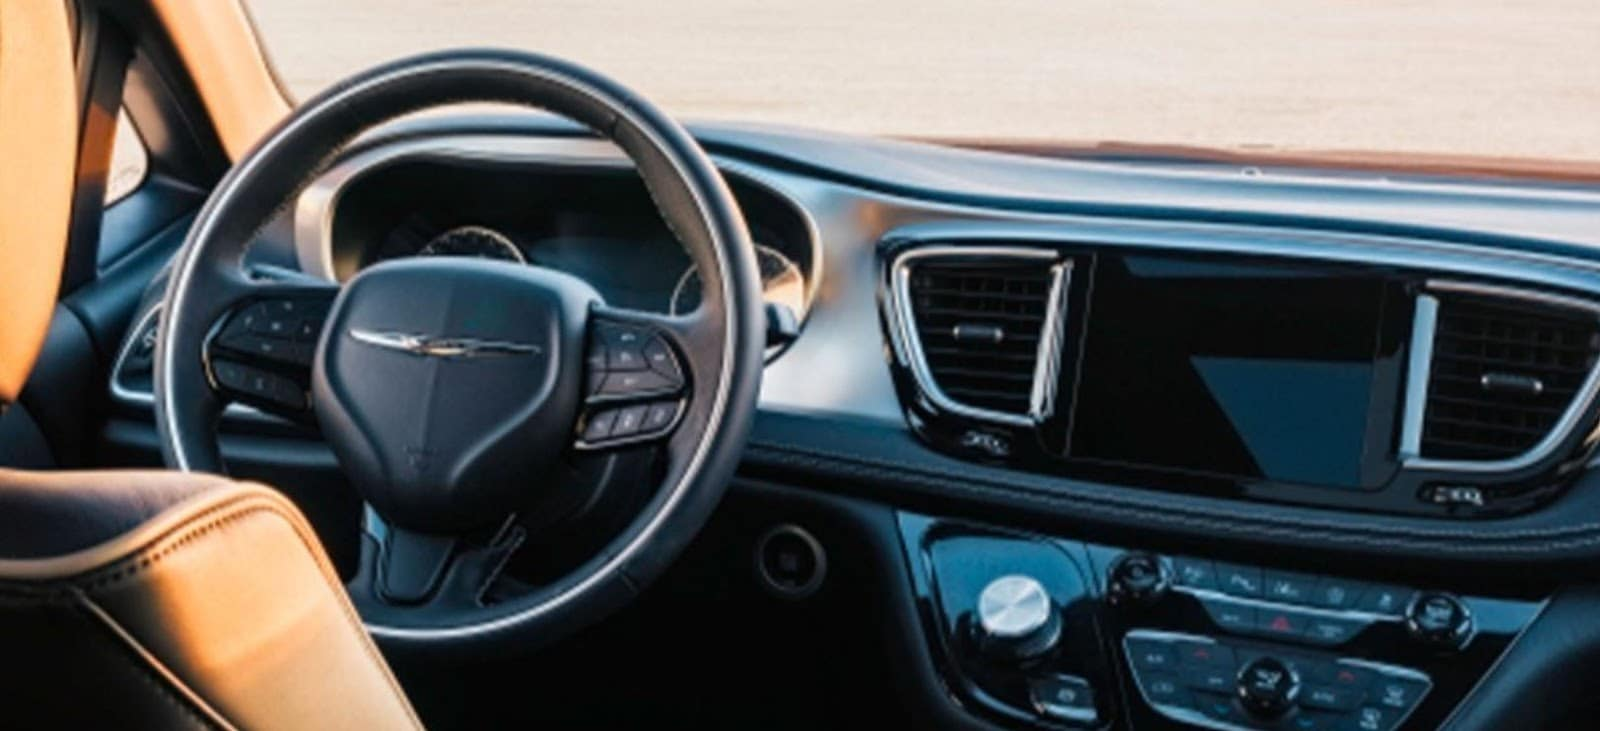 2019 chrysler pacifica steering wheel and interior design